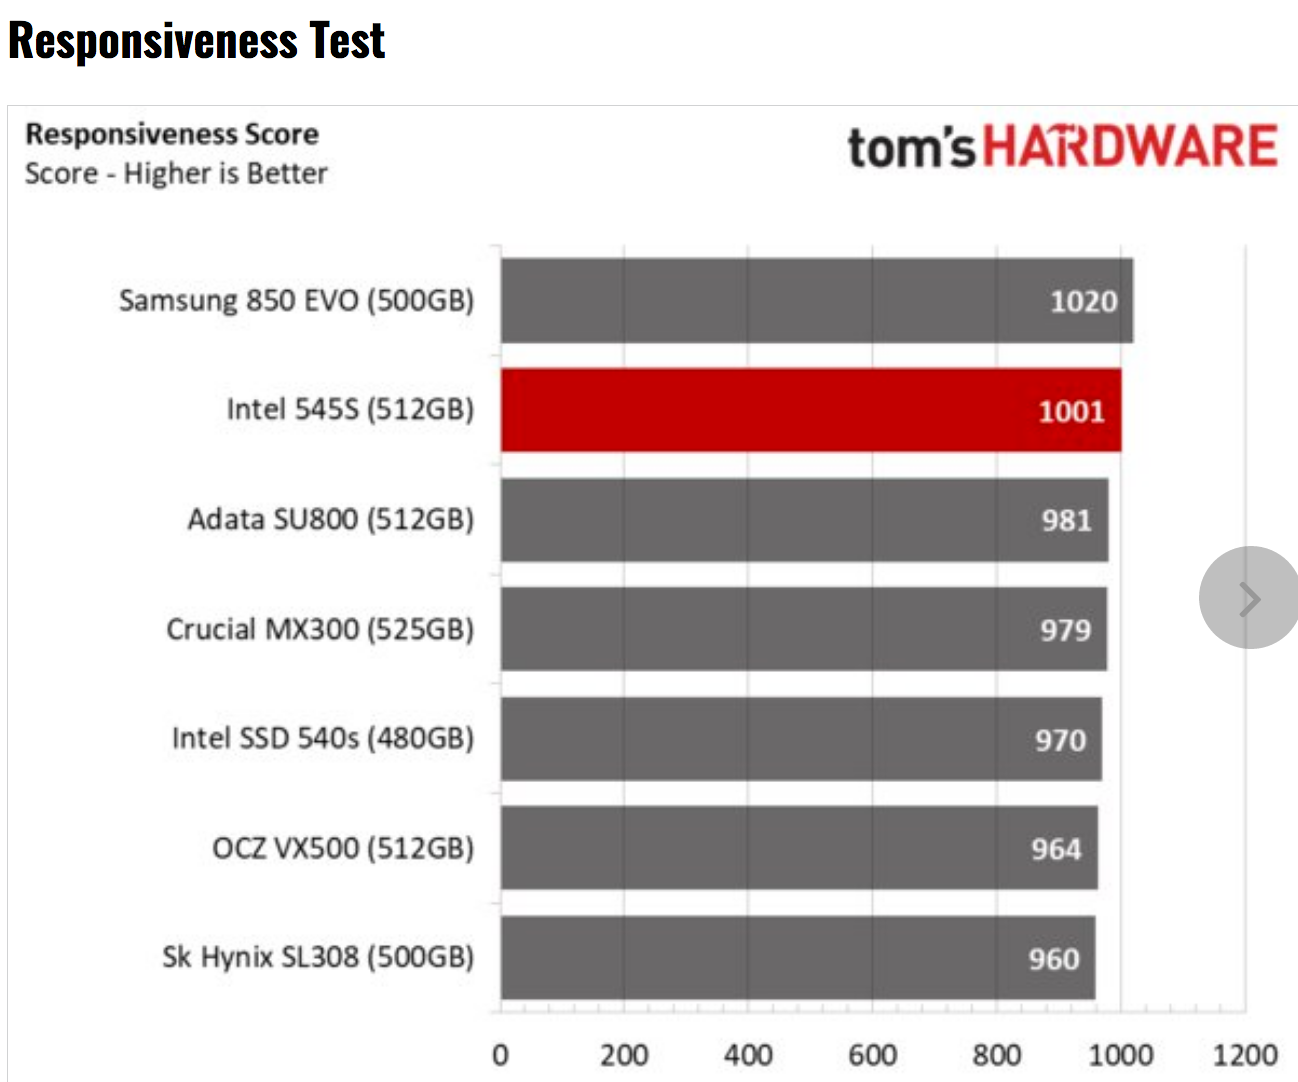 Tom's Hardware: Intel SSD 545s Review using BAPCo's SYSmark 2014 SE Responsiveness + Energy Benchmark Test